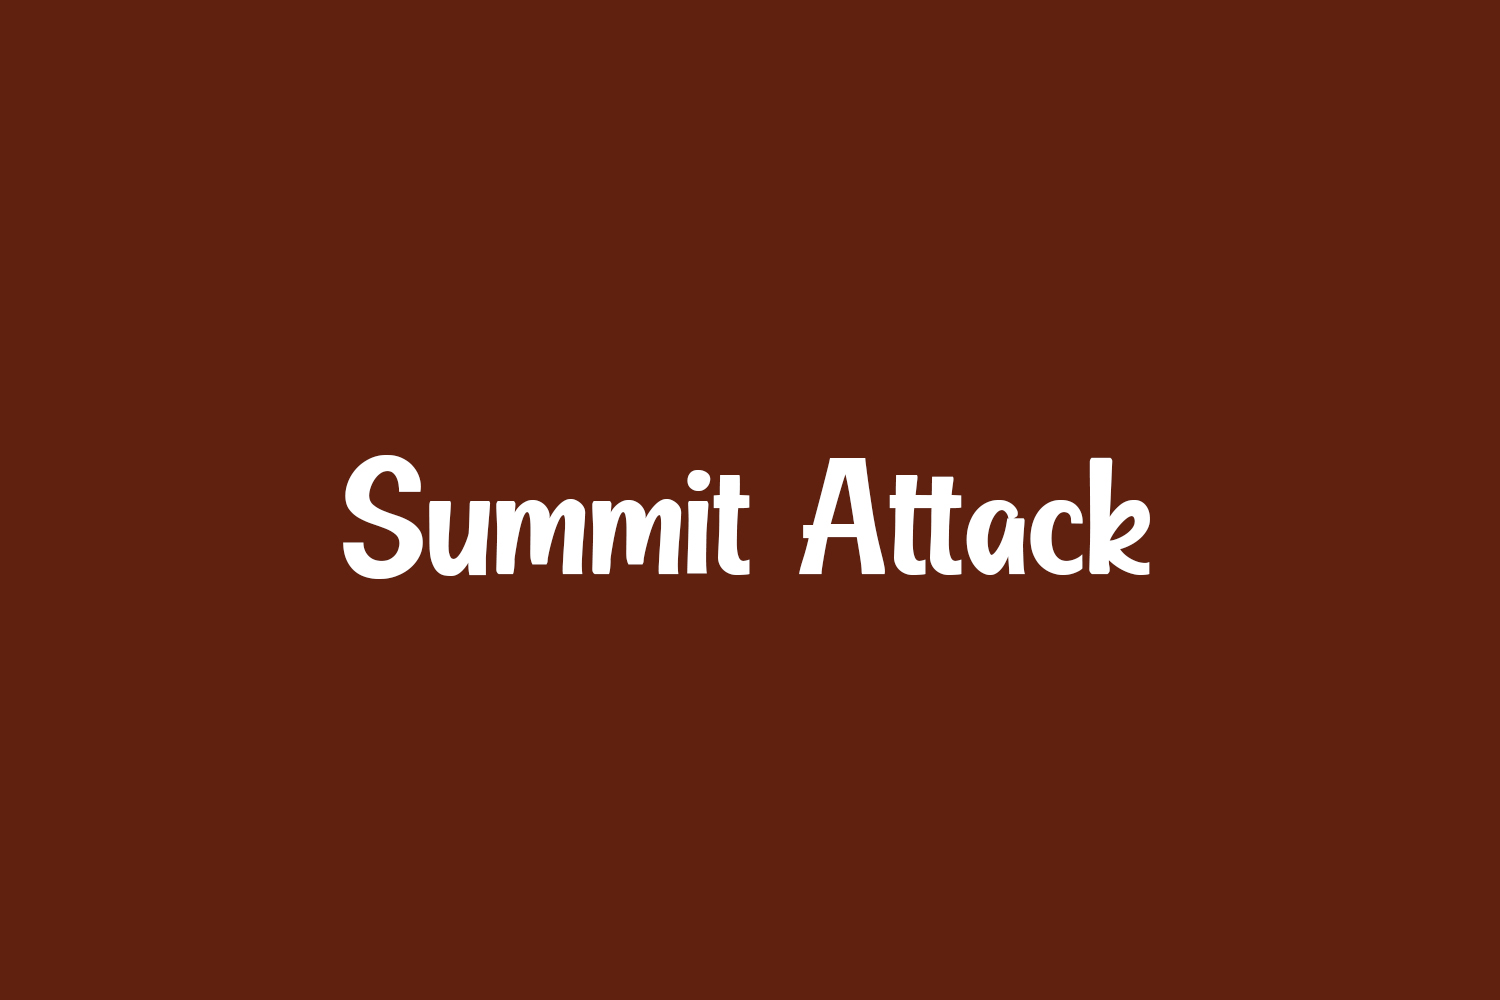 Summit Attack